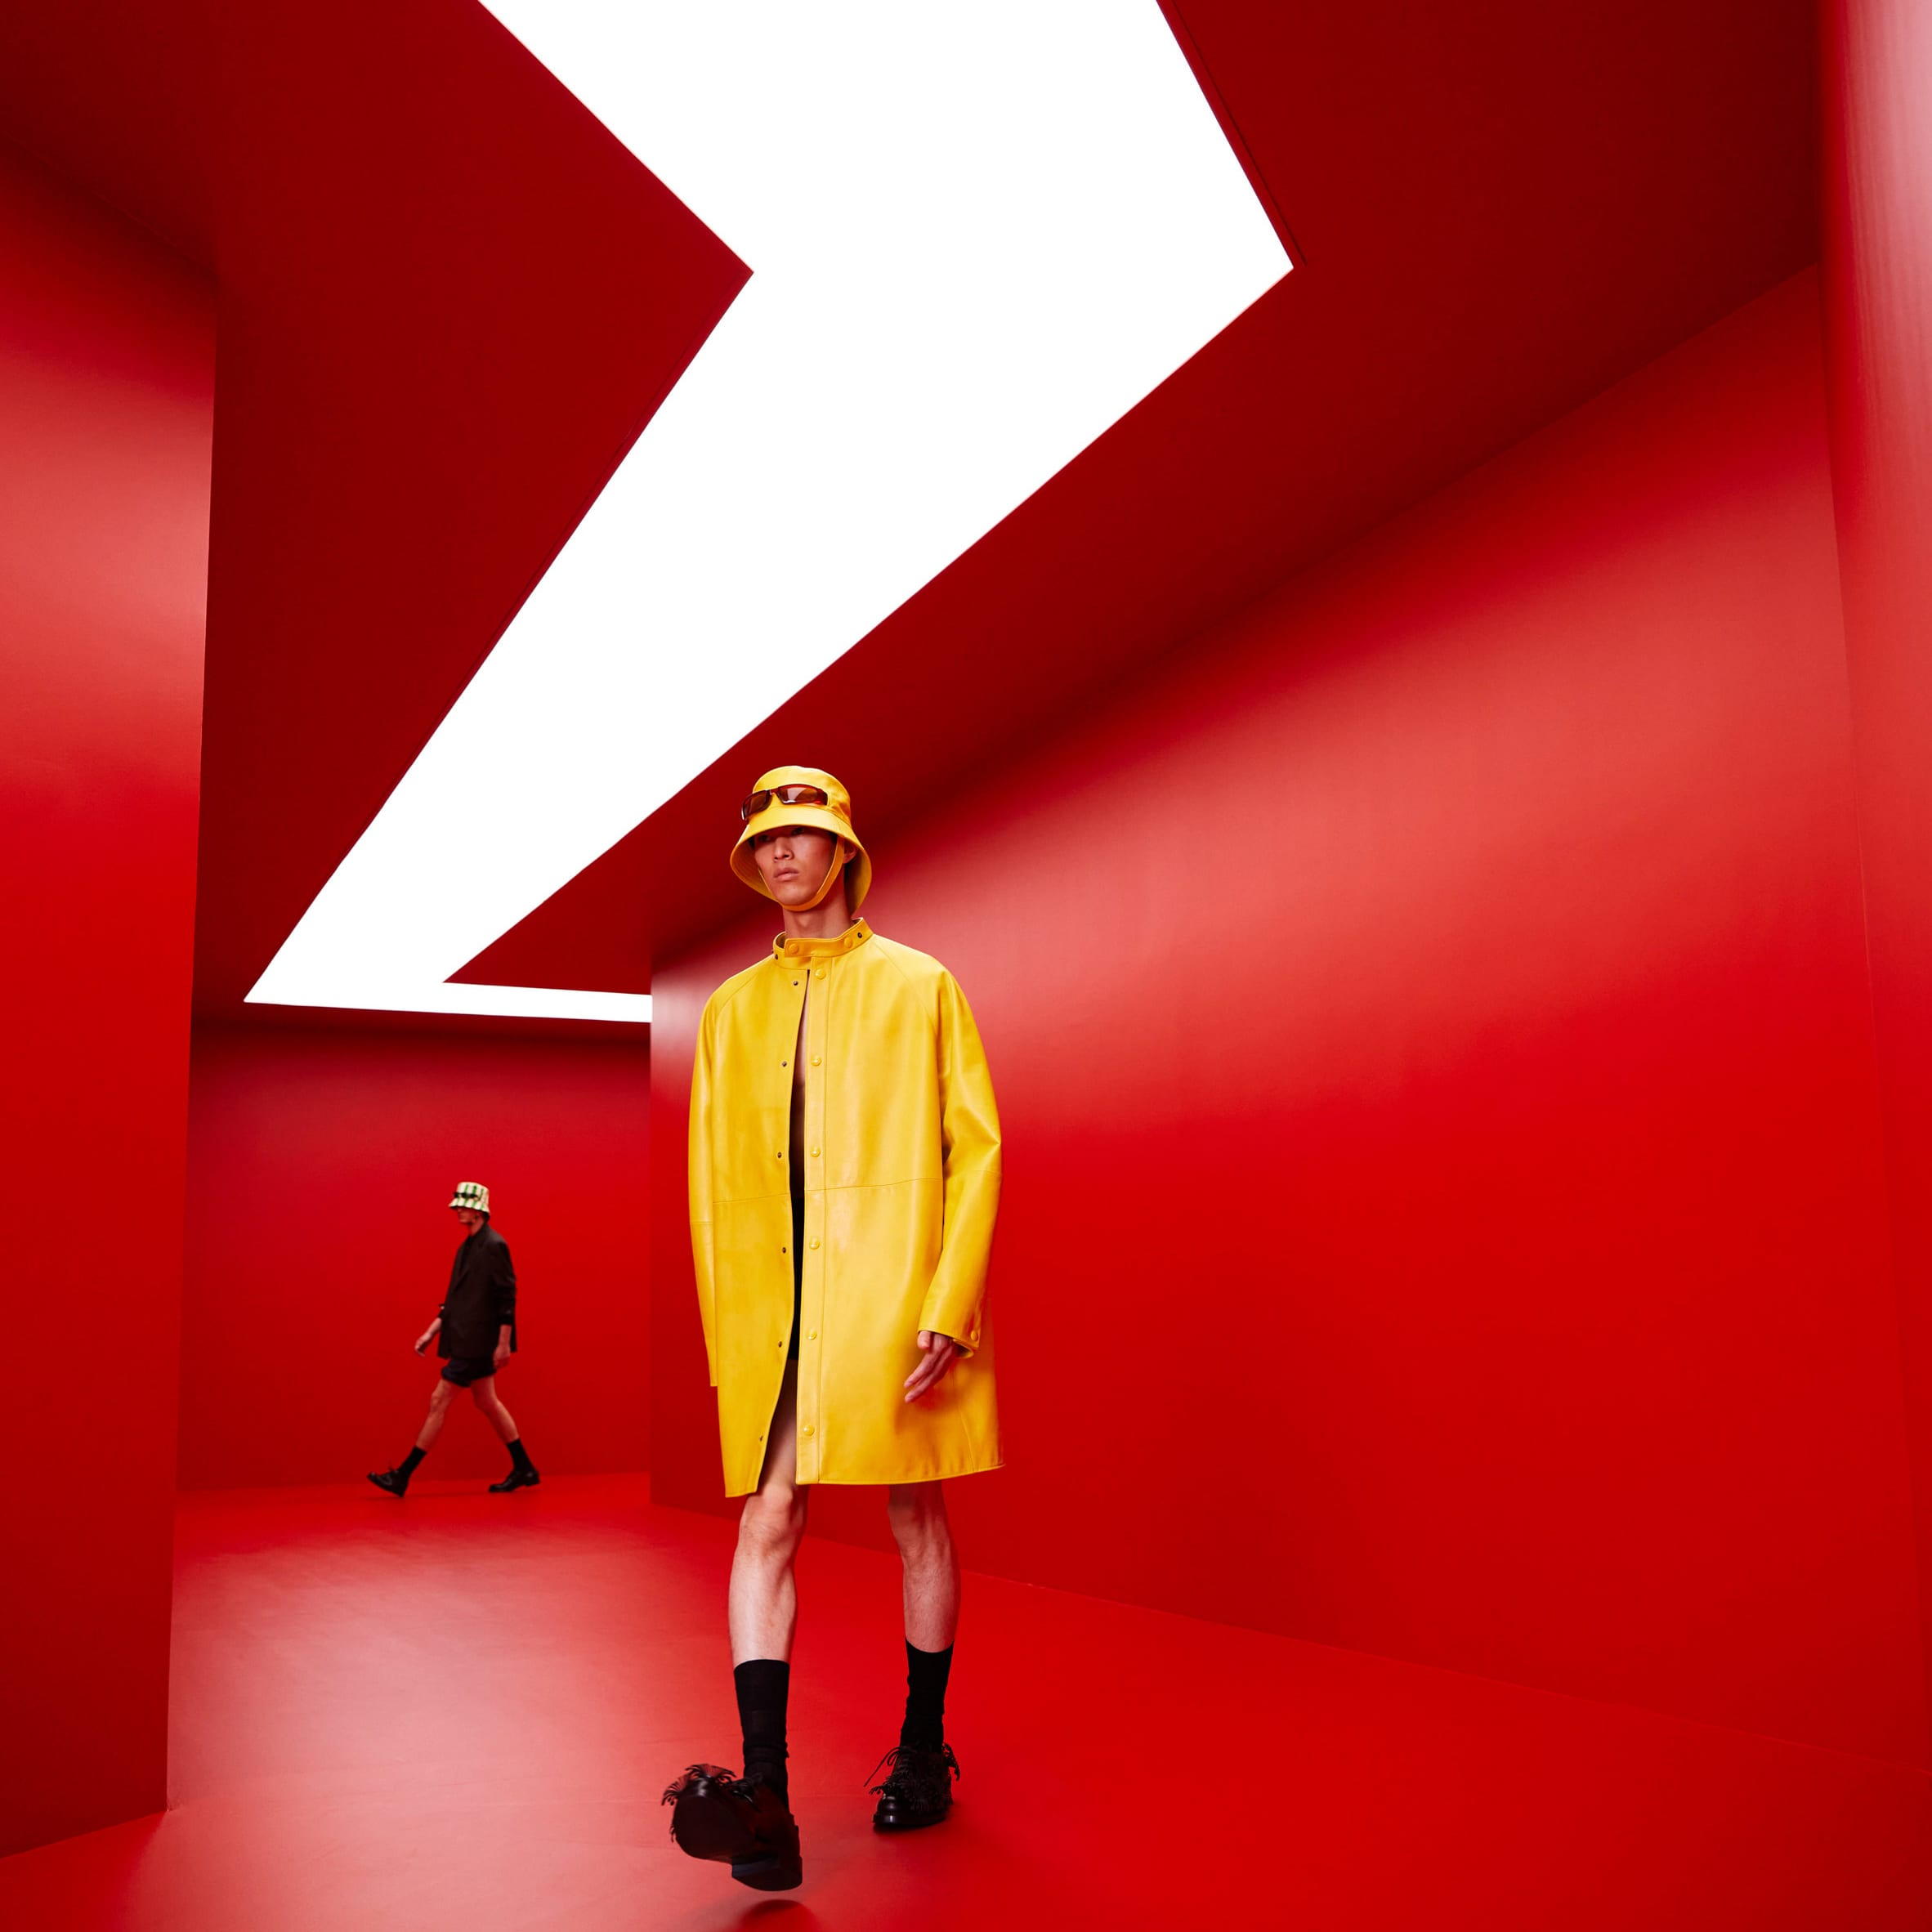 A model in a yellow coat walks through a red tunnel